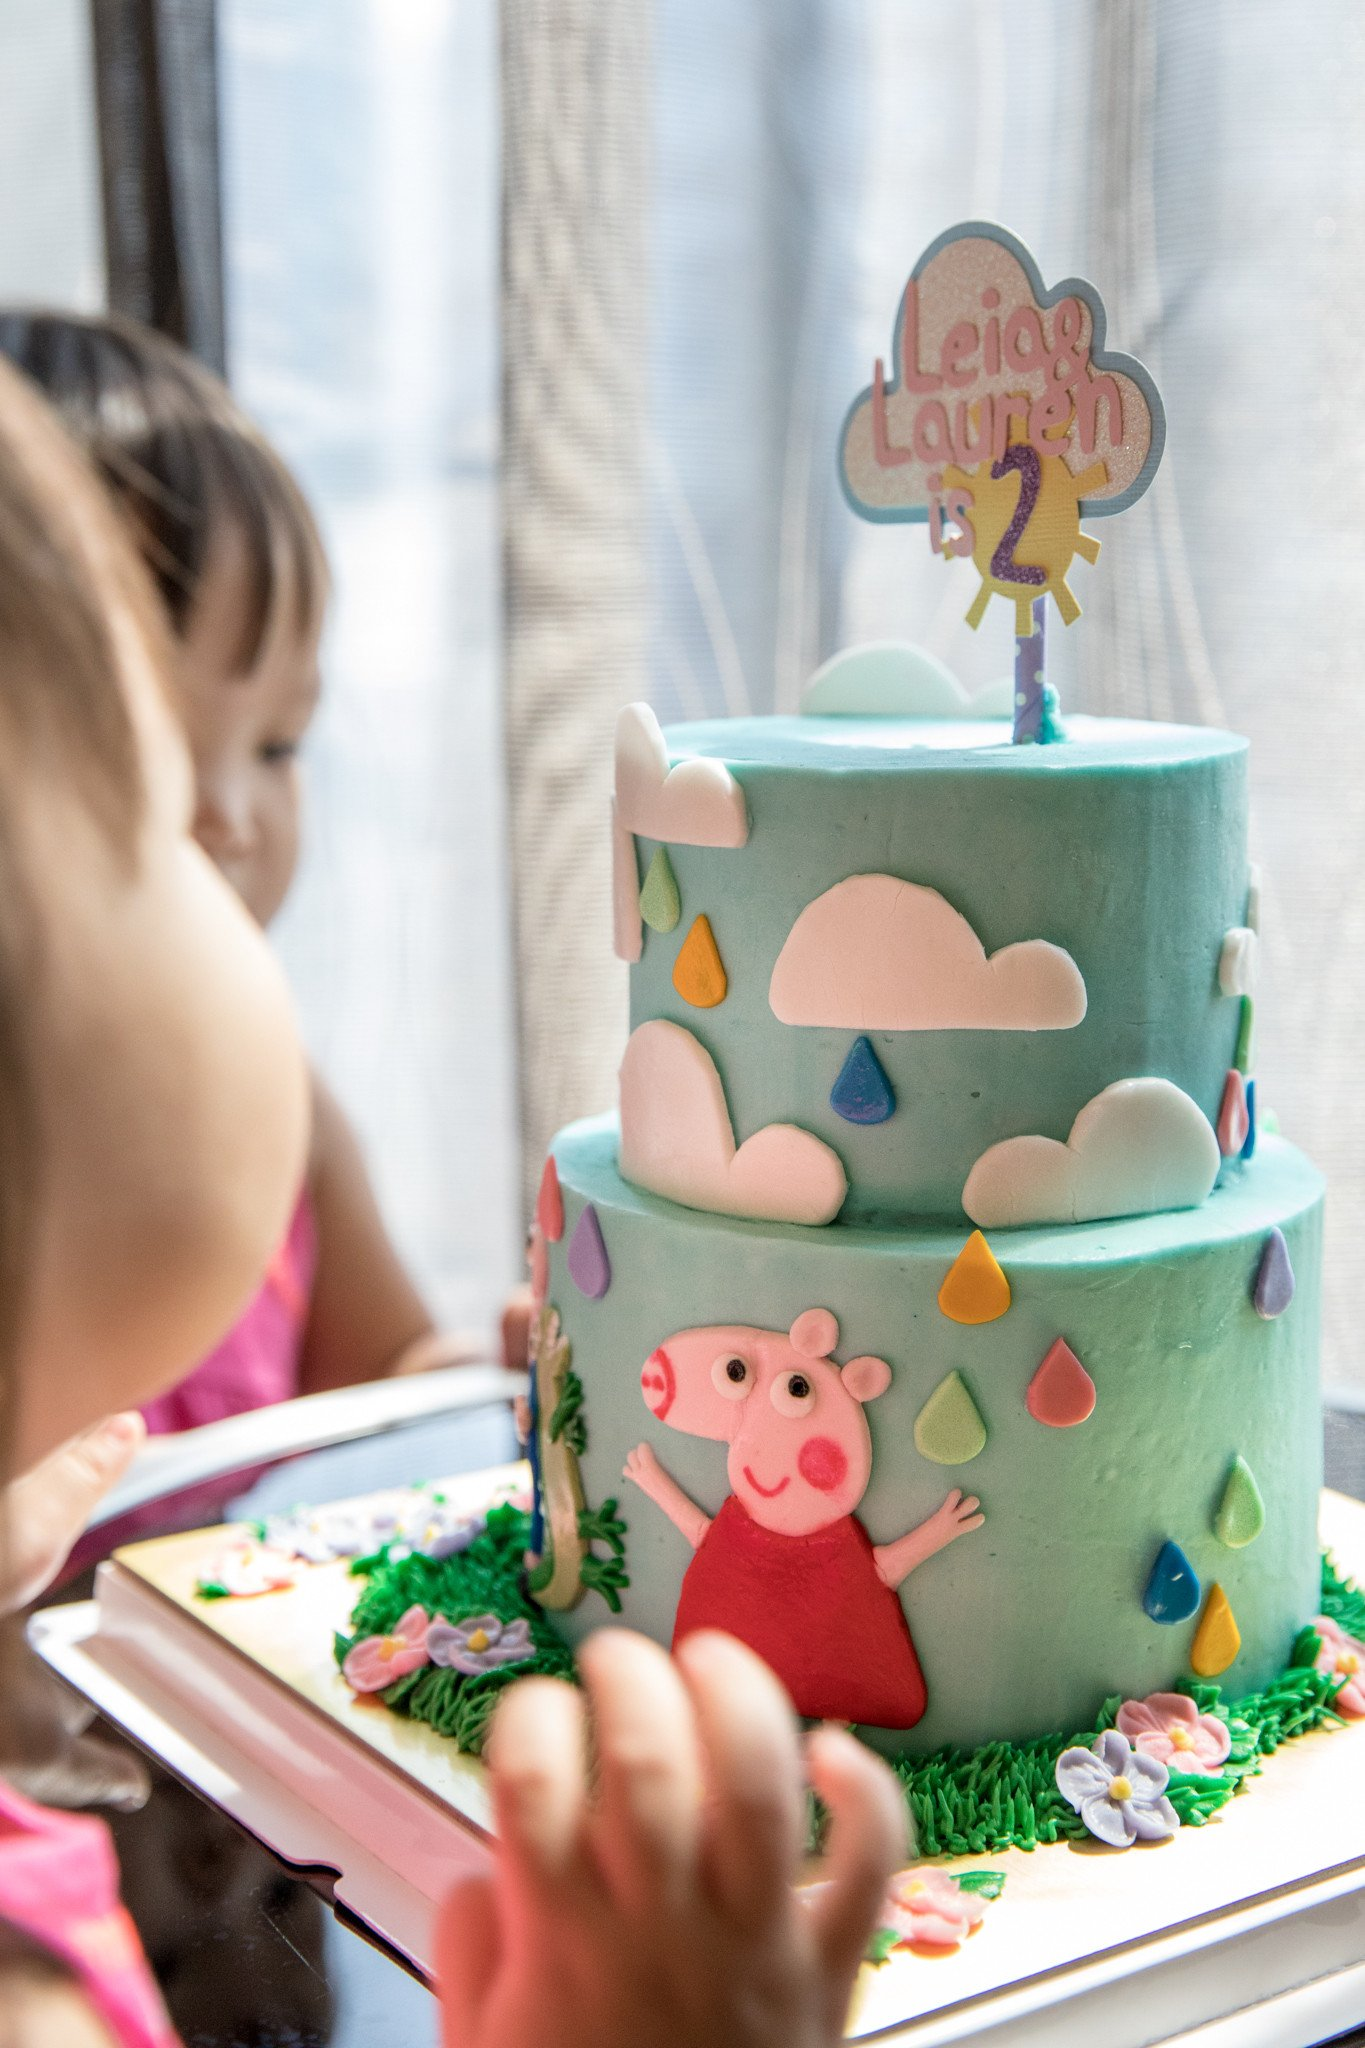 We promised them a Peppa Cake, had to keep our word. Thankful for Sophessa Cakes and Circussg who were able to deliver this beautiful customised 2-tier lychee rose cake in such short notice. The girls were over the moon with all their favourite elements on it =)